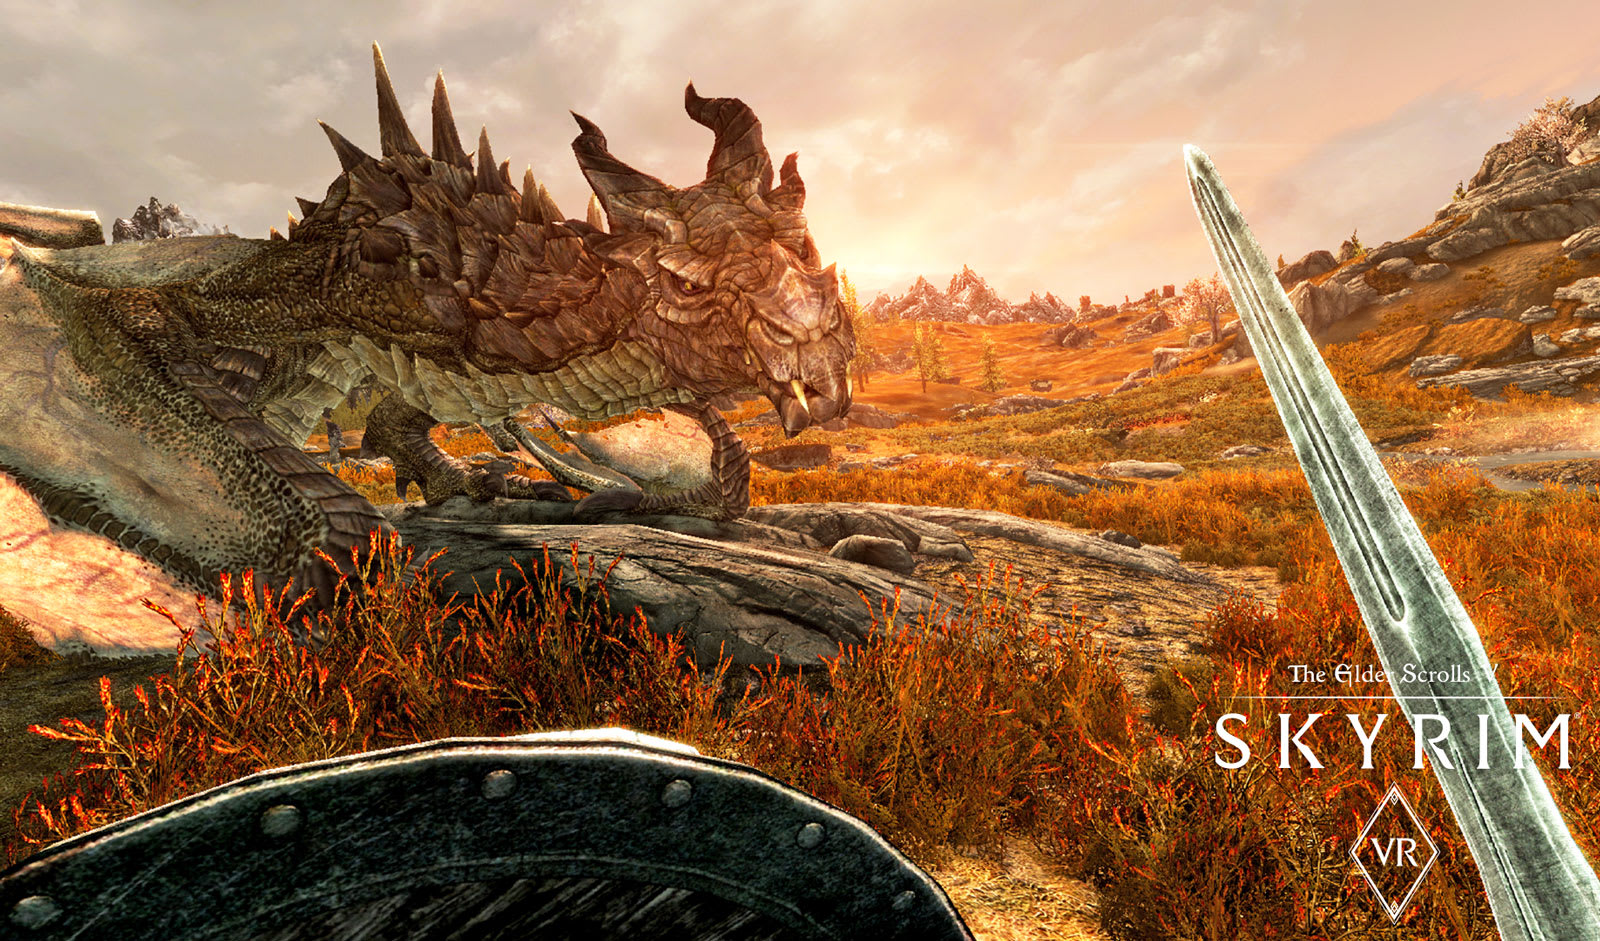 Skyrim VR' is now easier to play and better to look at